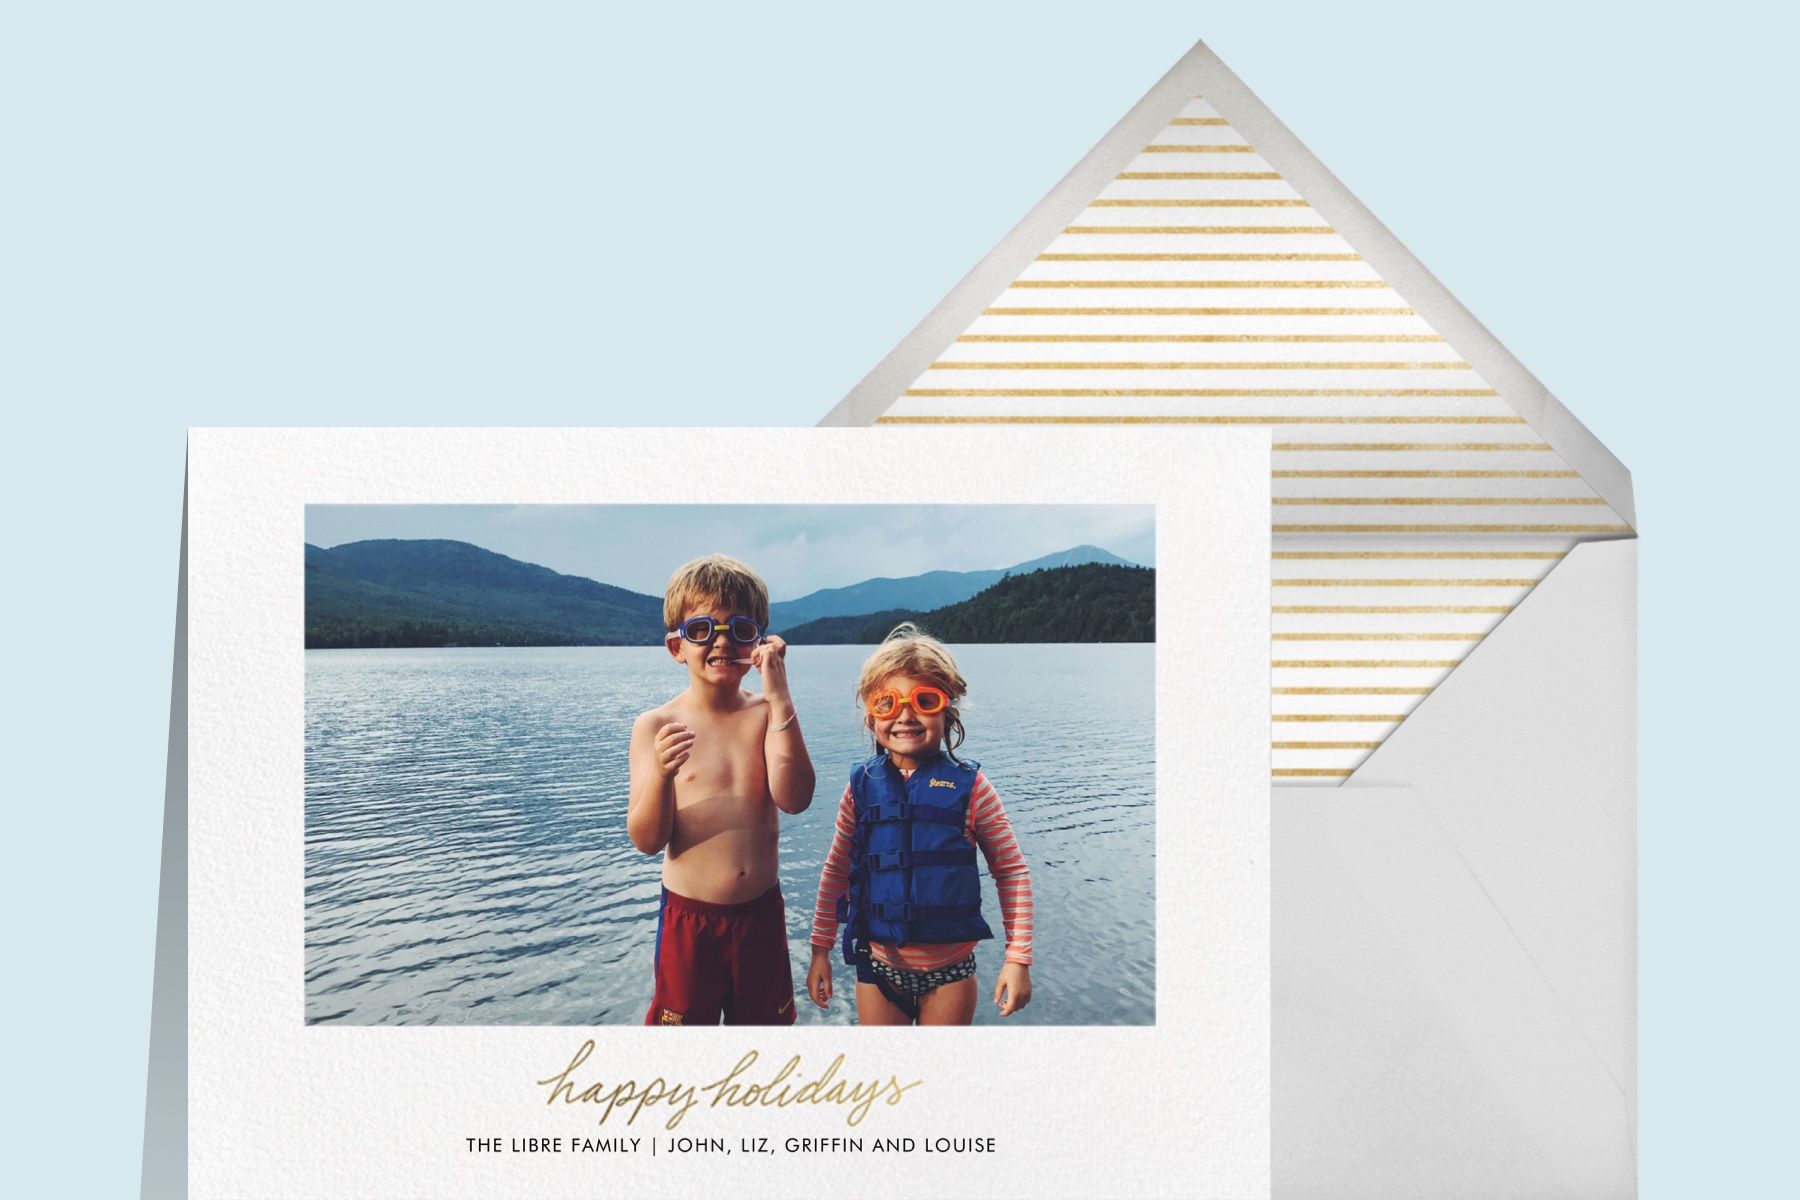 photo card holiday card ideas from Paperless Post